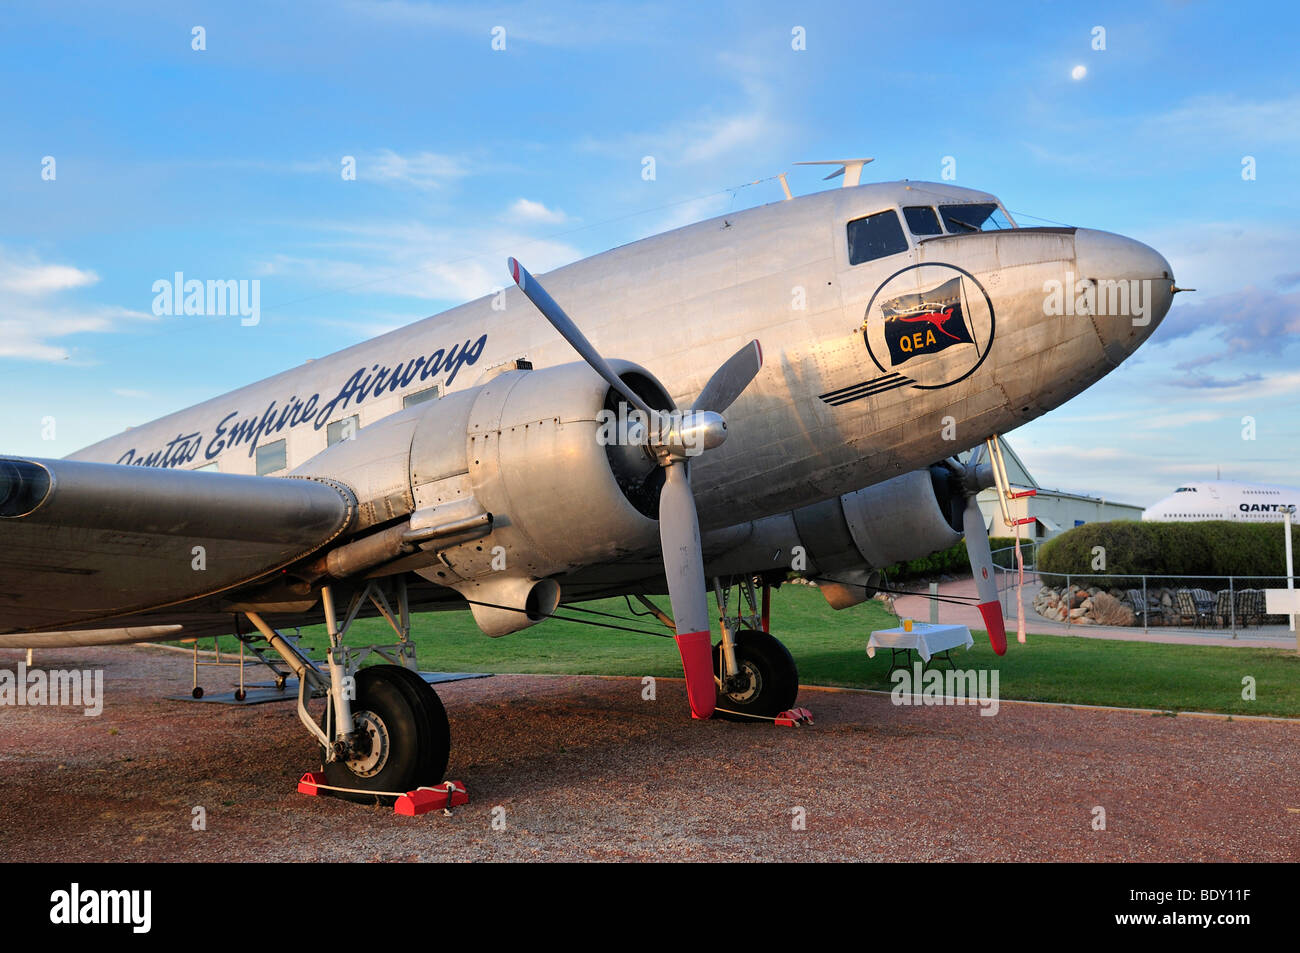 Historic DC 8 airplane at Qantas Founders Museum, Longreach, Queensland Outback, Australia - Stock Image